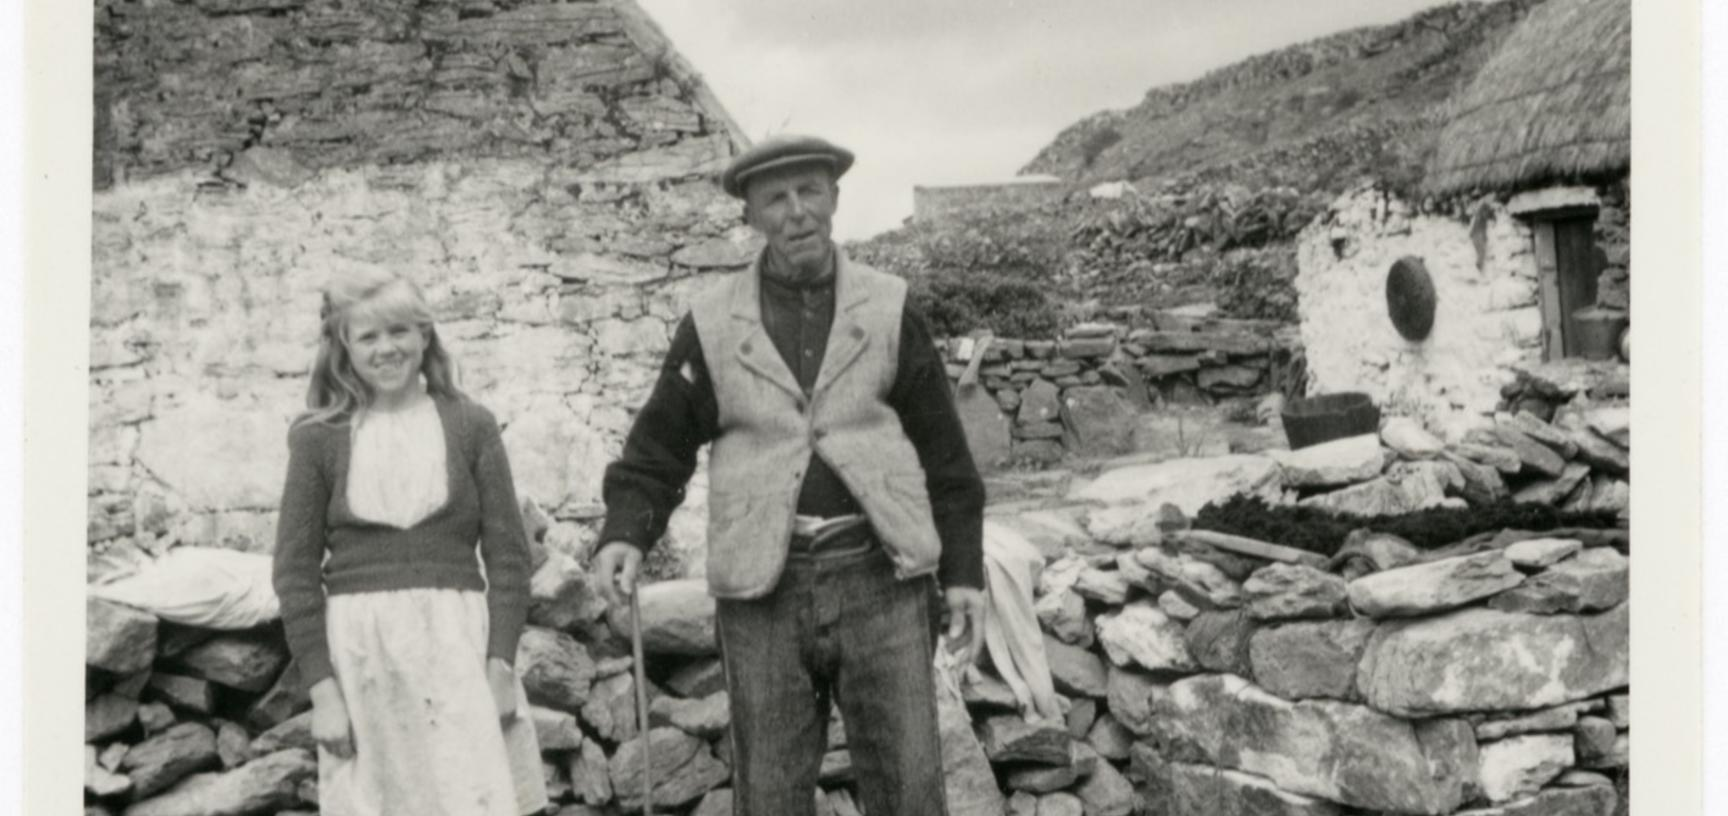 'Man wearing homespun tweed' (typed caption). Photograph by Ingegärd Vallin. Aran Islands, County Galway, Ireland. 1949.